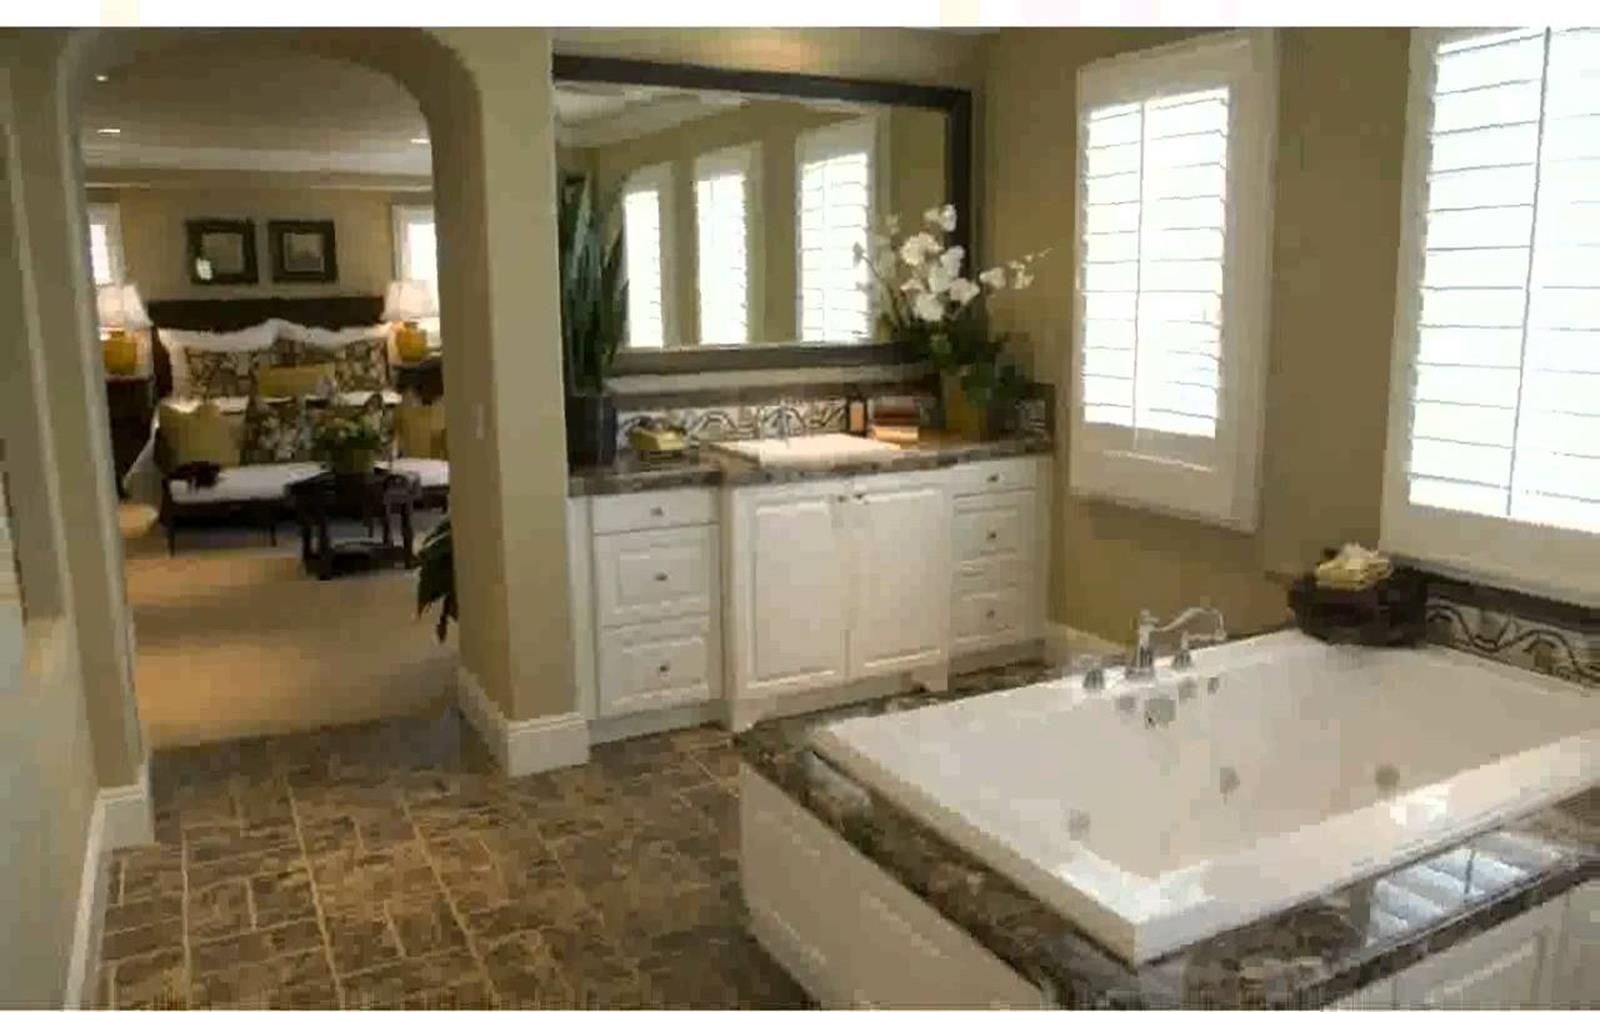 40+ Most Popular Neutral Color Bathroom Ideas in This Years & 40+ Most Popular Neutral Color Bathroom Ideas in This Years ...